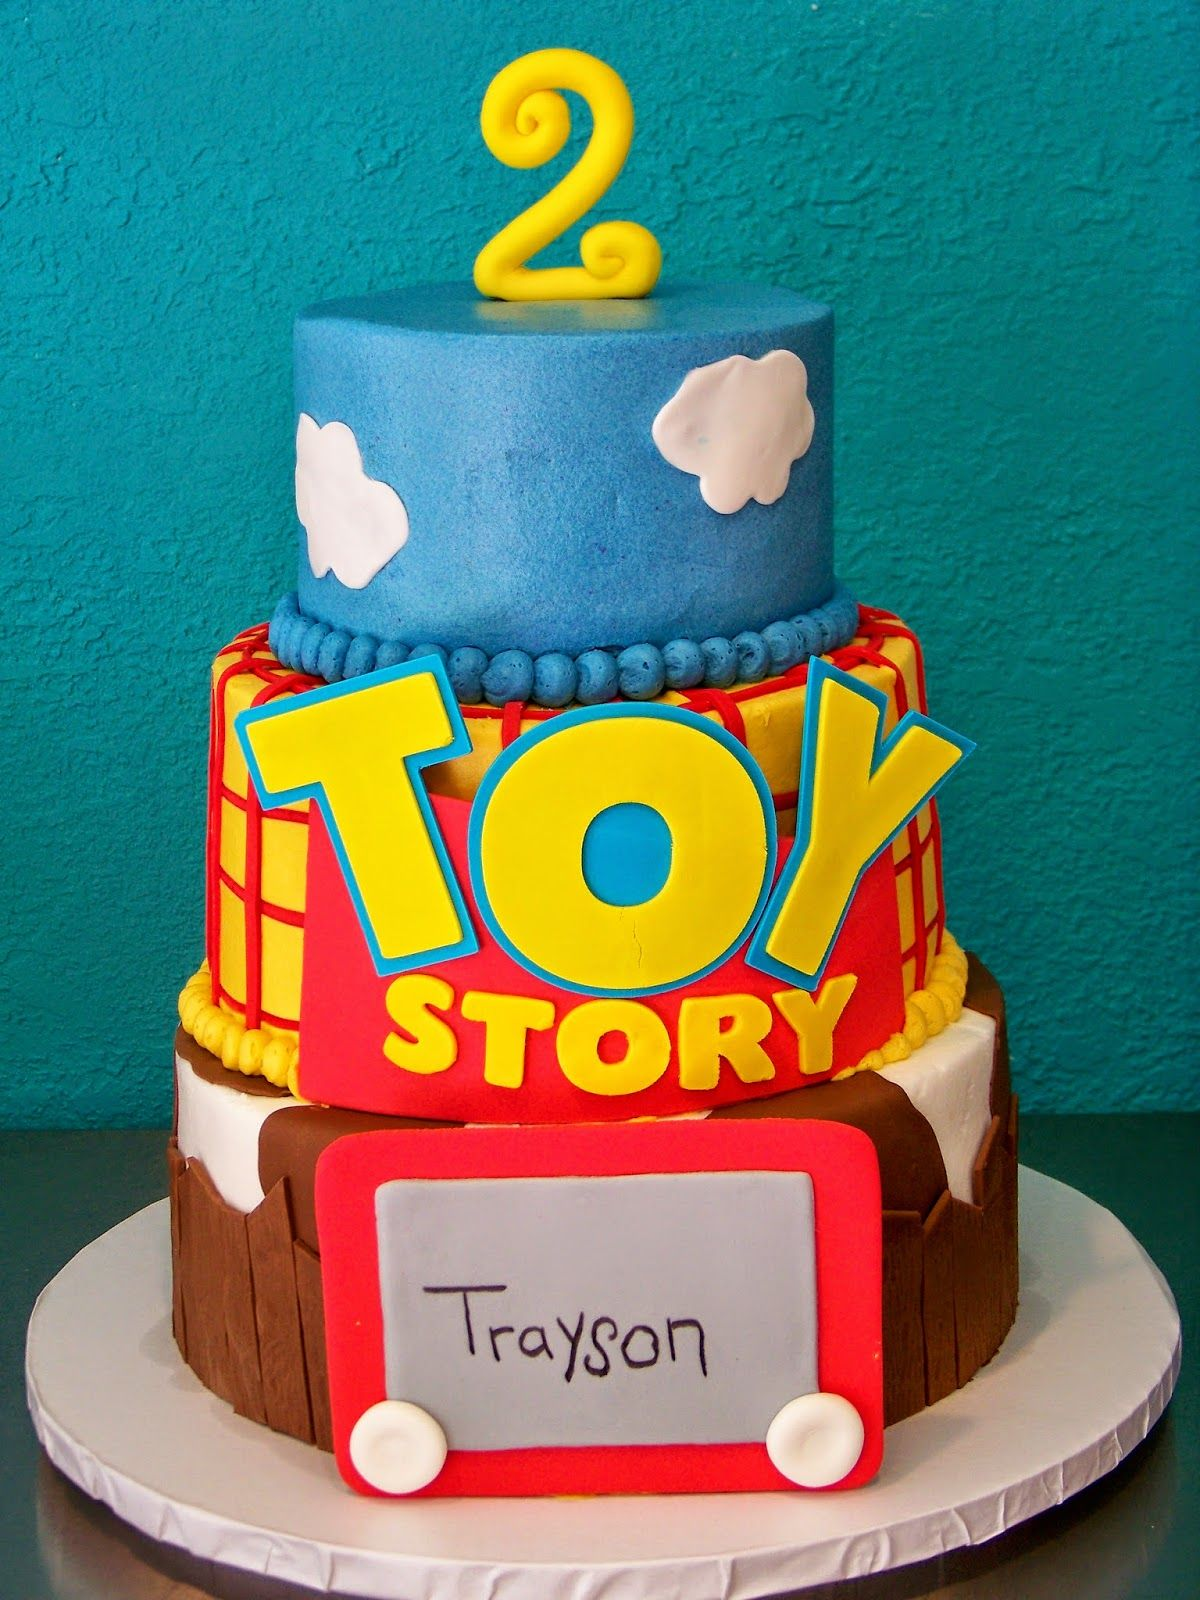 Toy Store Cake Tutorial Step By Step Instructions For Making